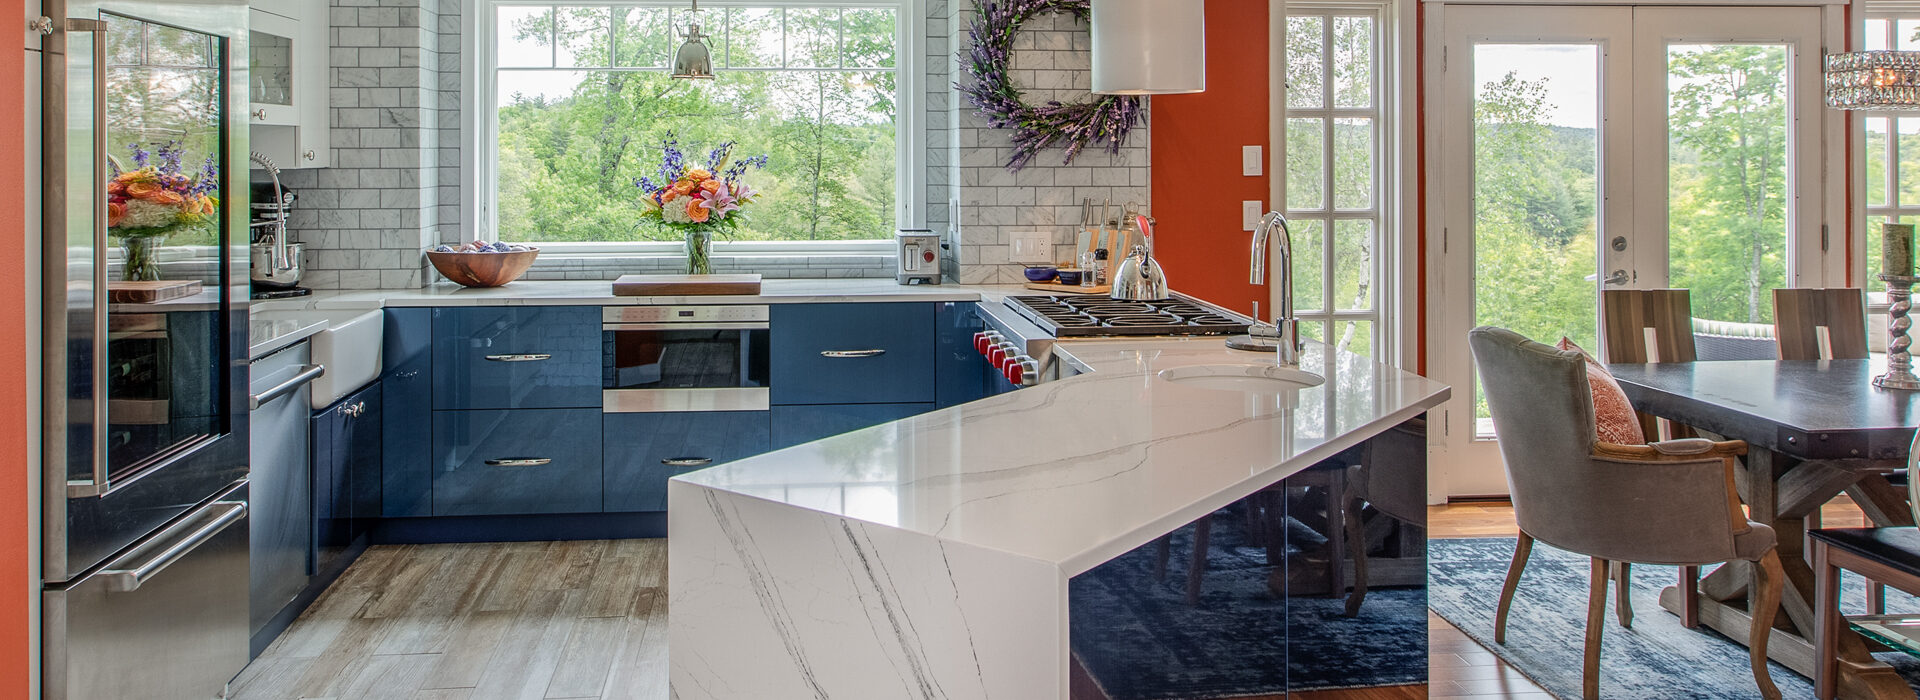 Pictures Of Kitchen Cabinets Bathroom Vanities Showplace Cabinetry